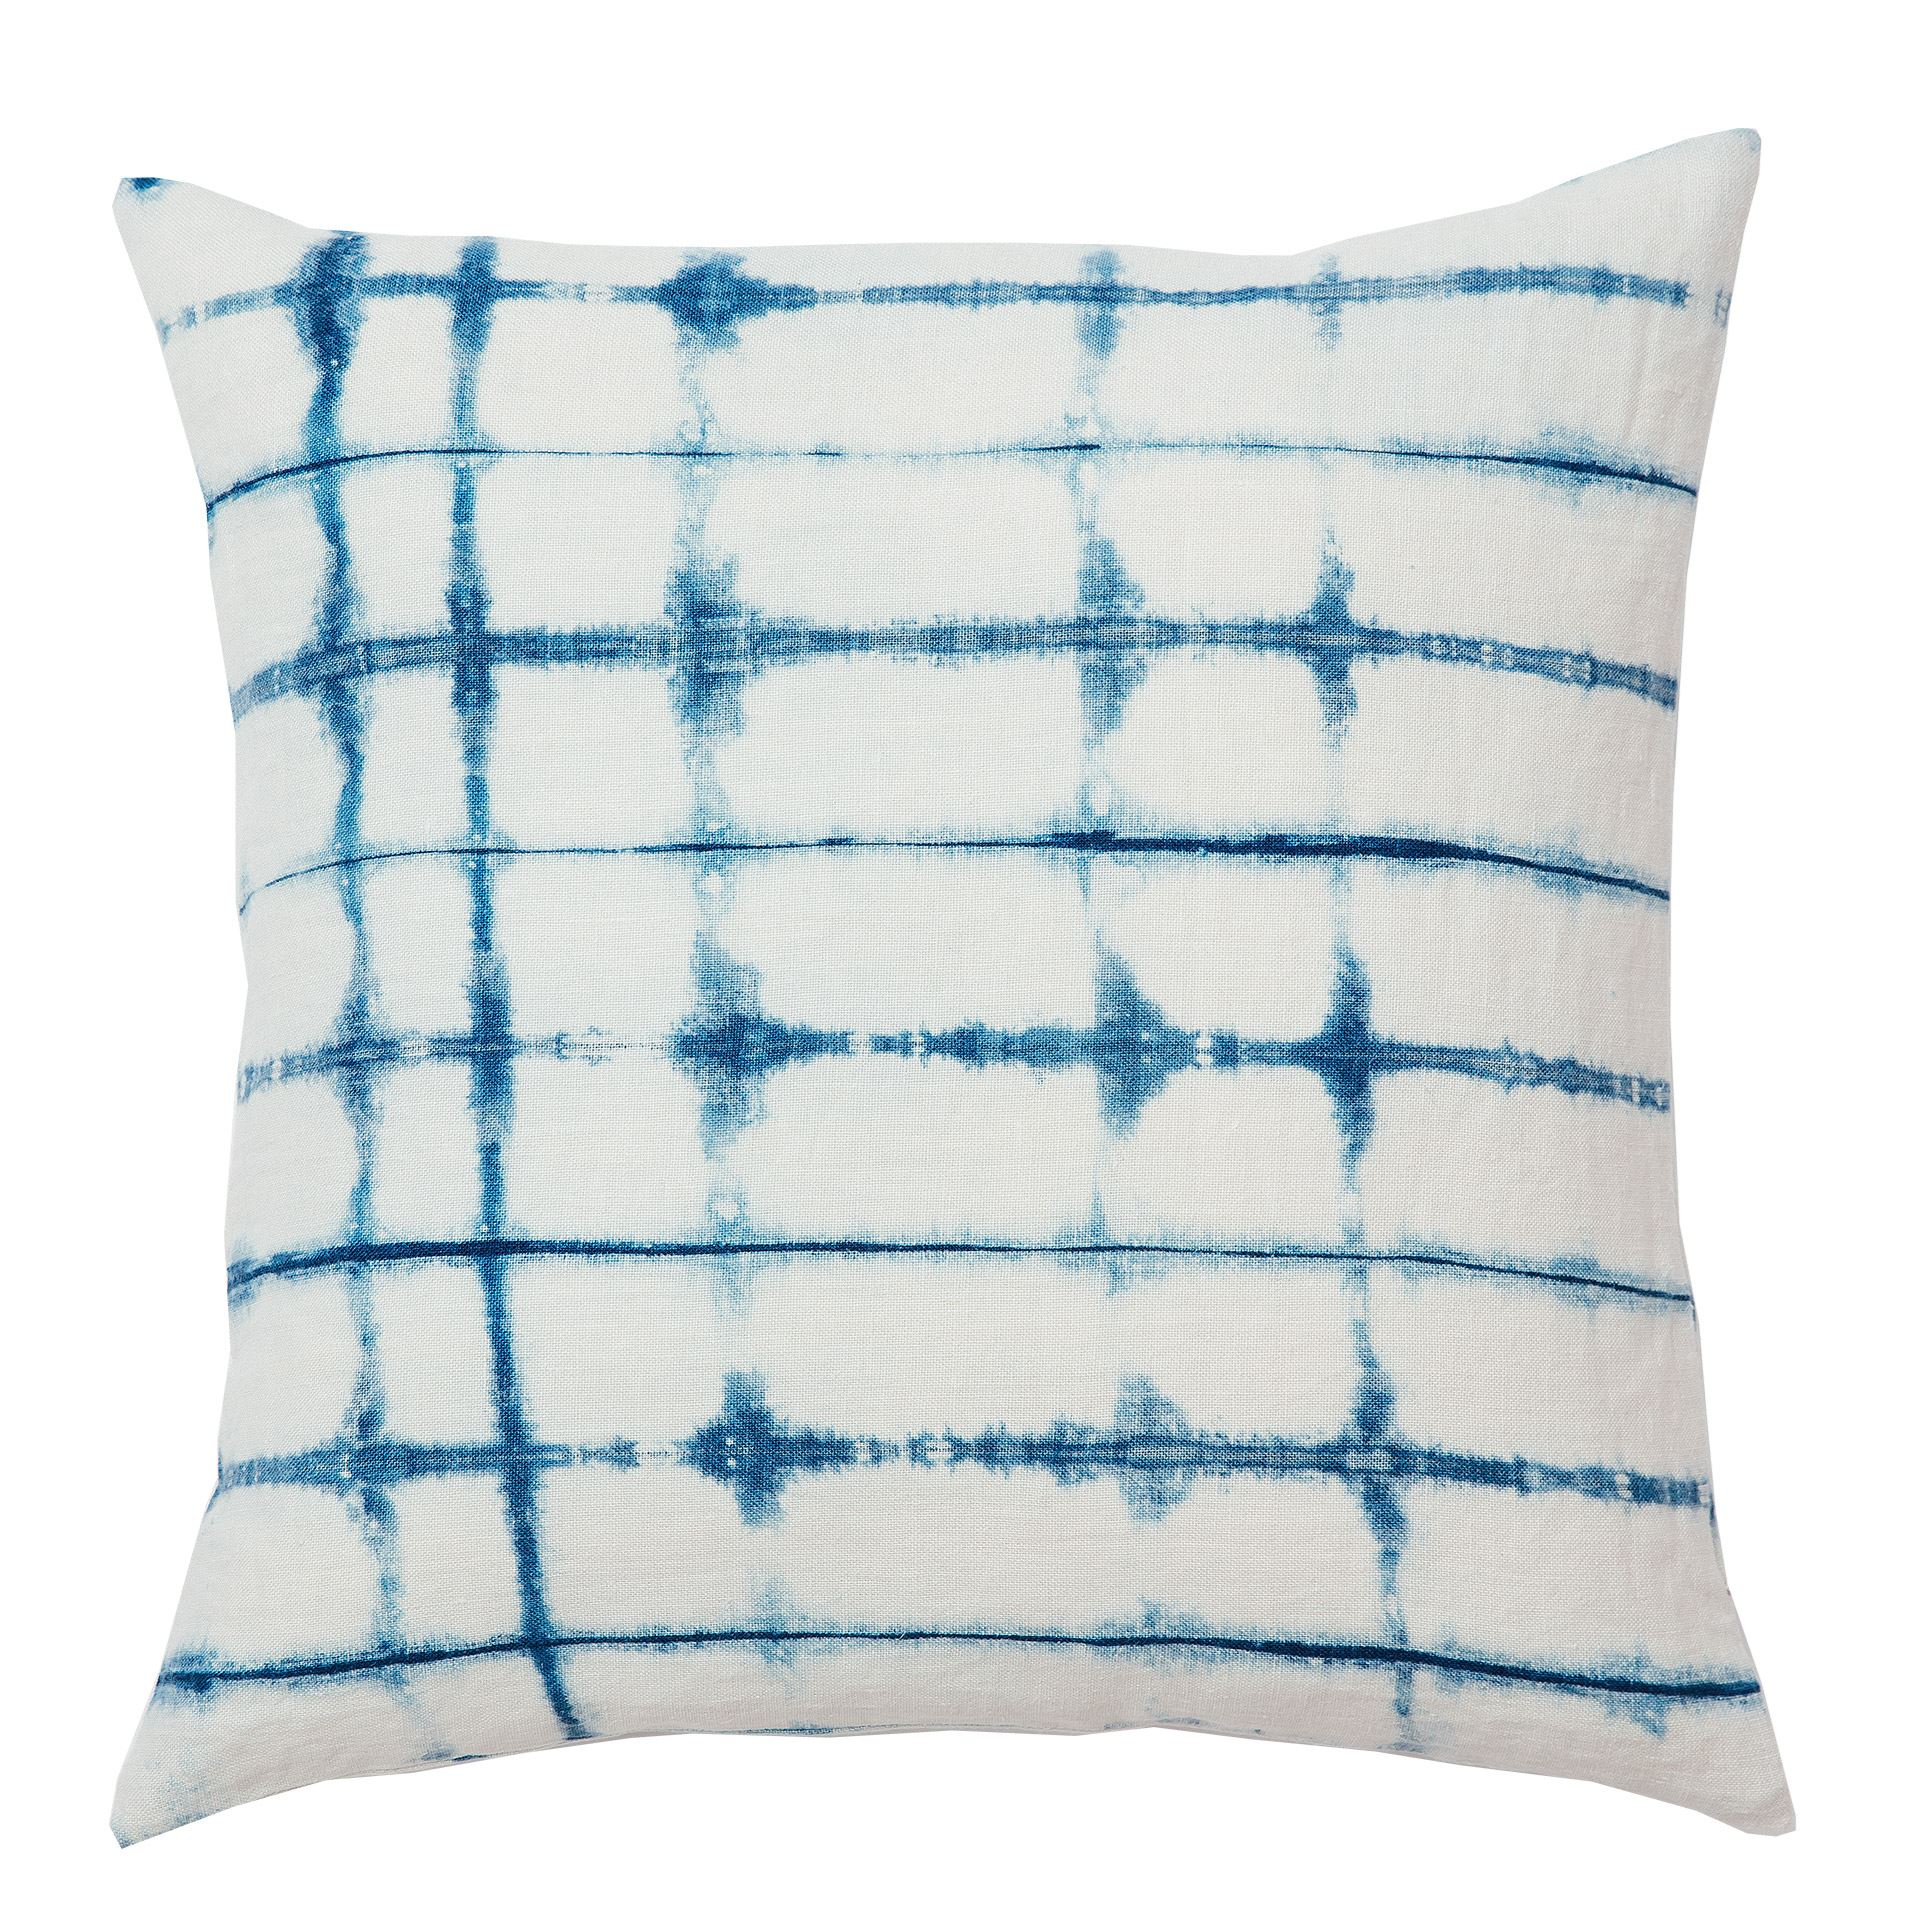 Picture of Fishbone Shibori Cushion